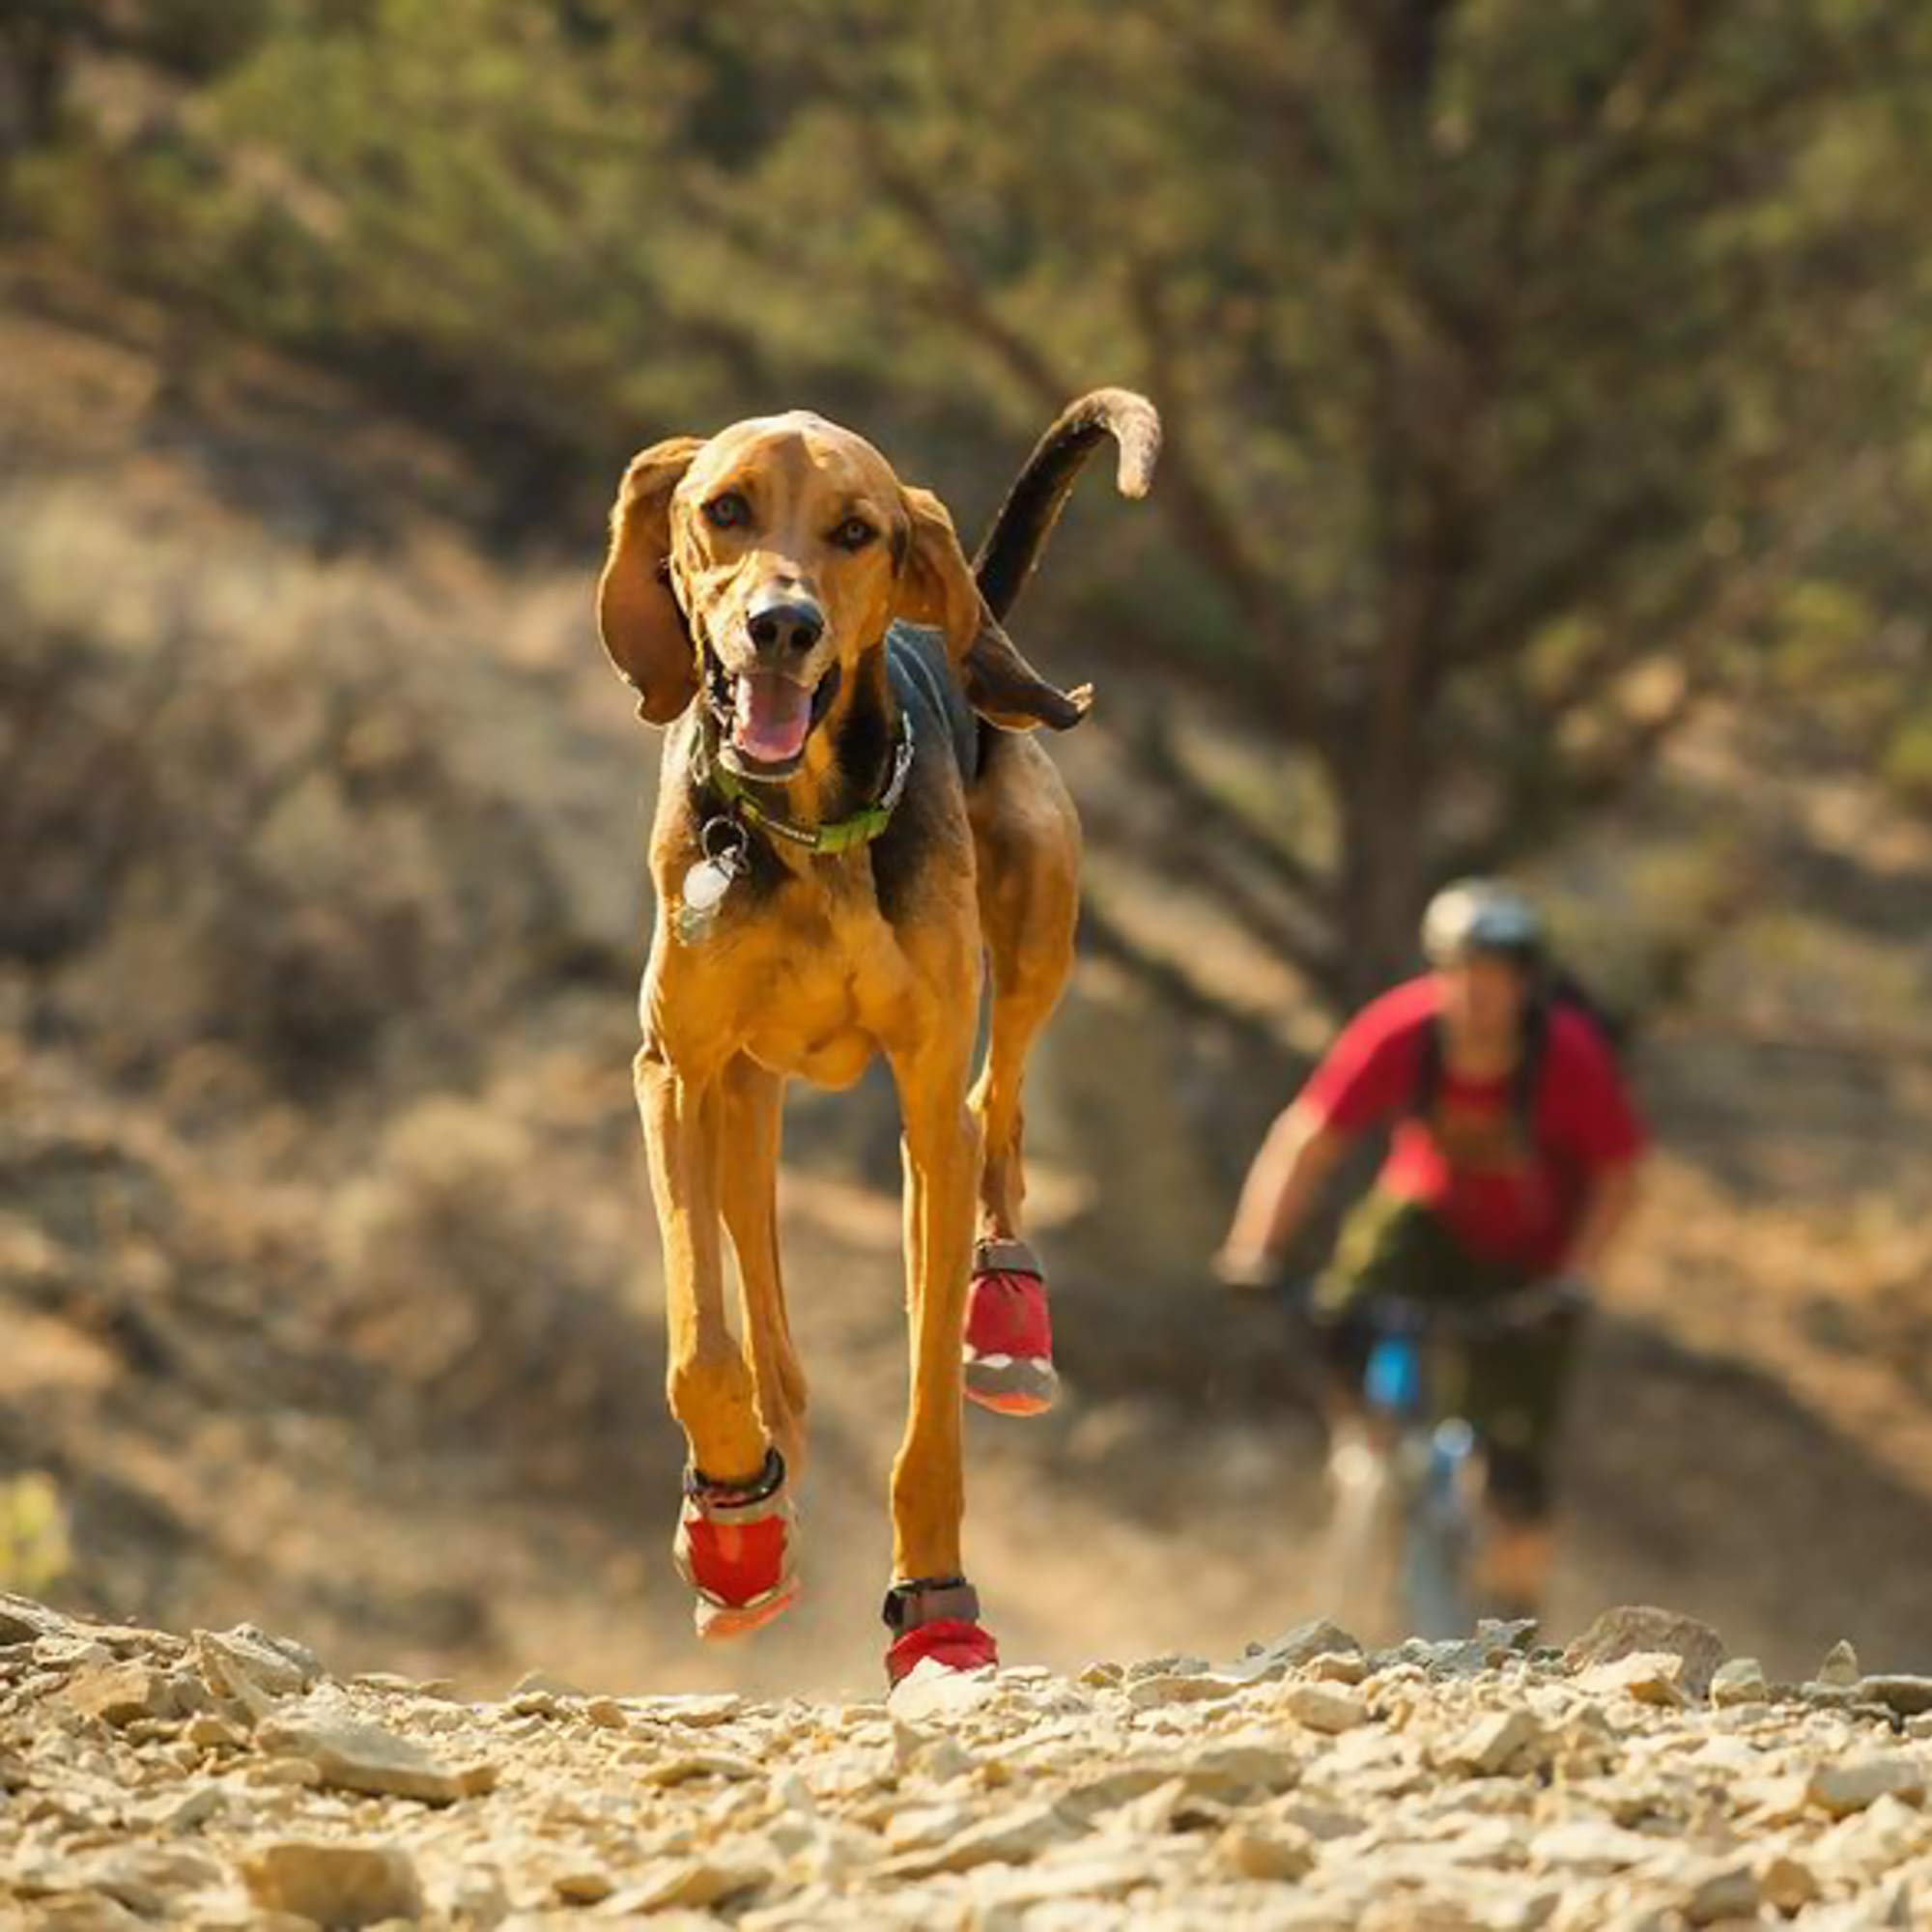 RUFFWEAR - Grip Trex, Red Currant, 2.25 in (4 Boots) by RUFFWEAR (Image #7)